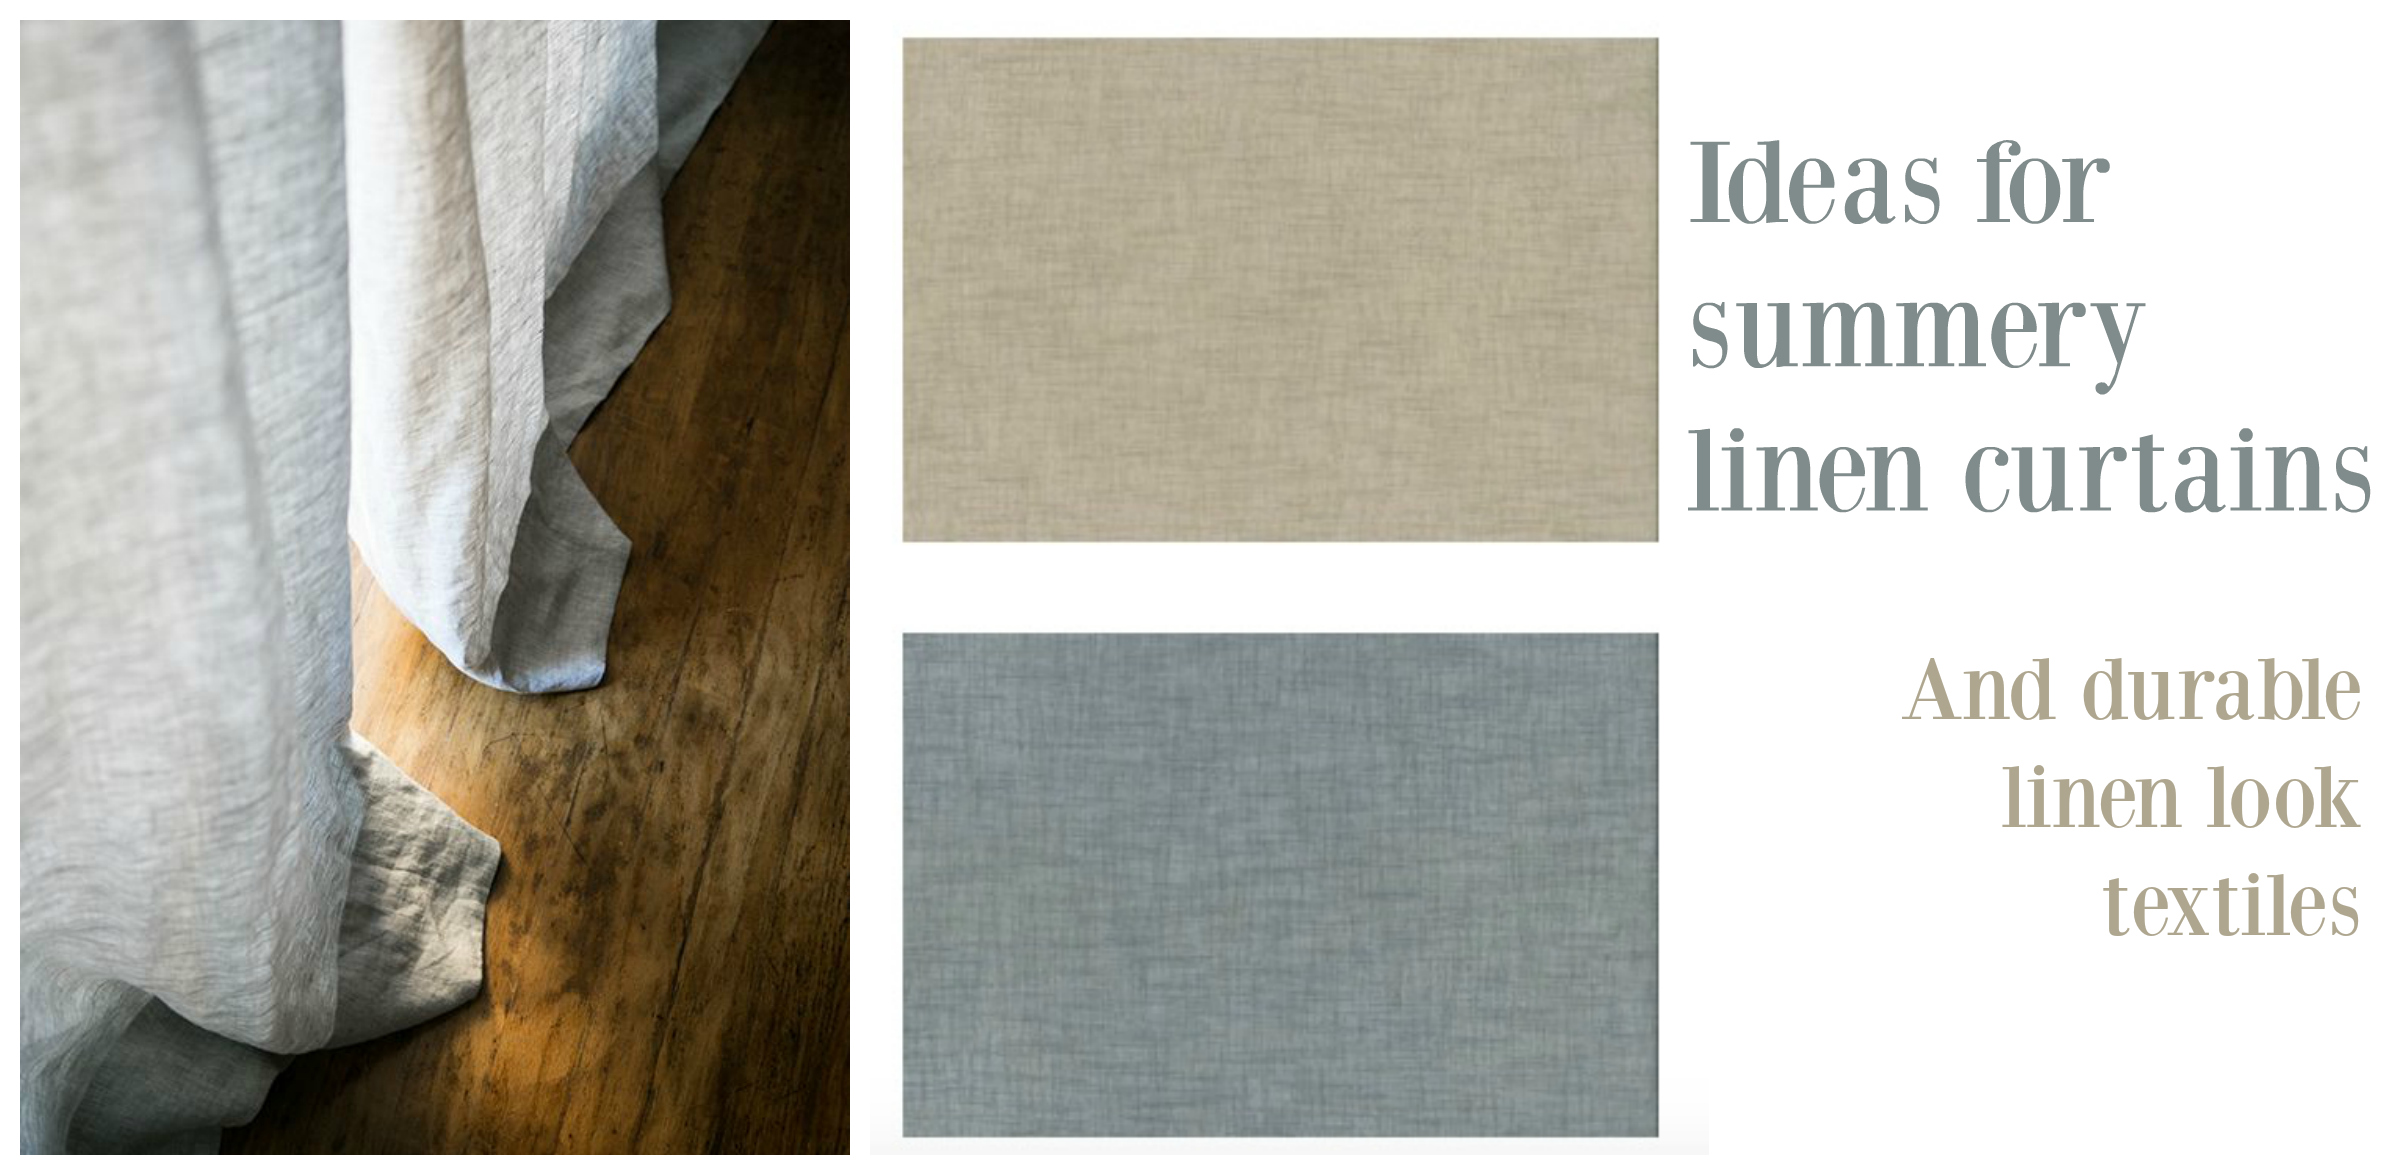 Ideas for linen curtains and linen look fabrics for summer blog